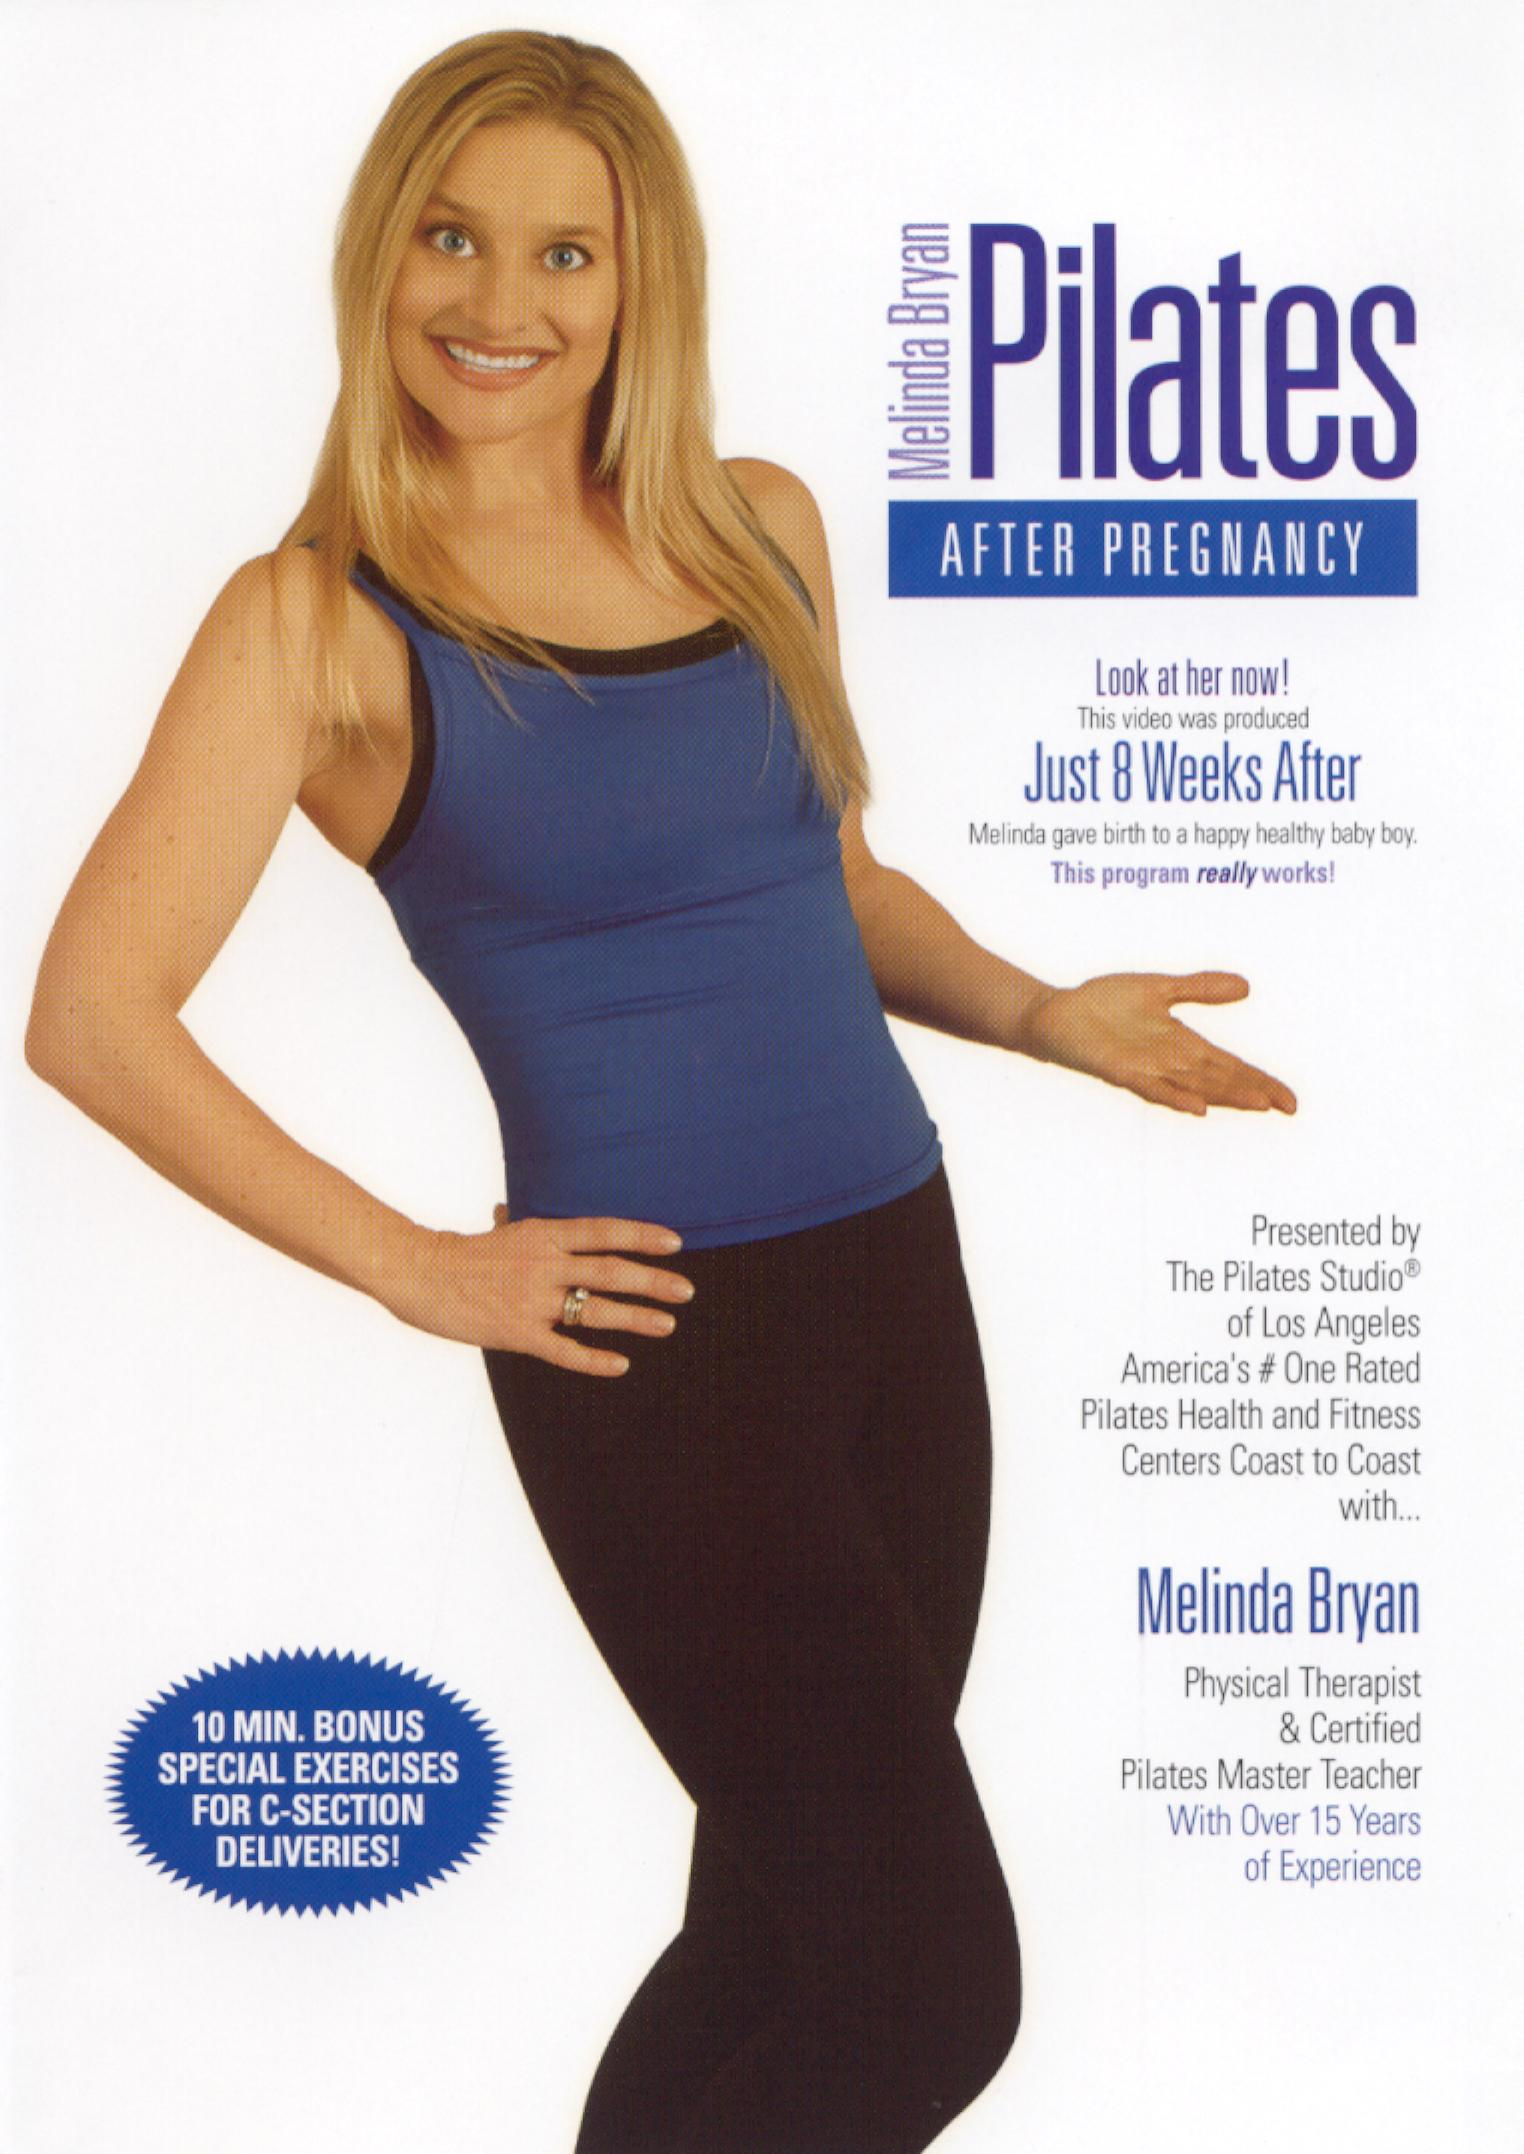 Melinda Bryan: Pilates After Pregnancy